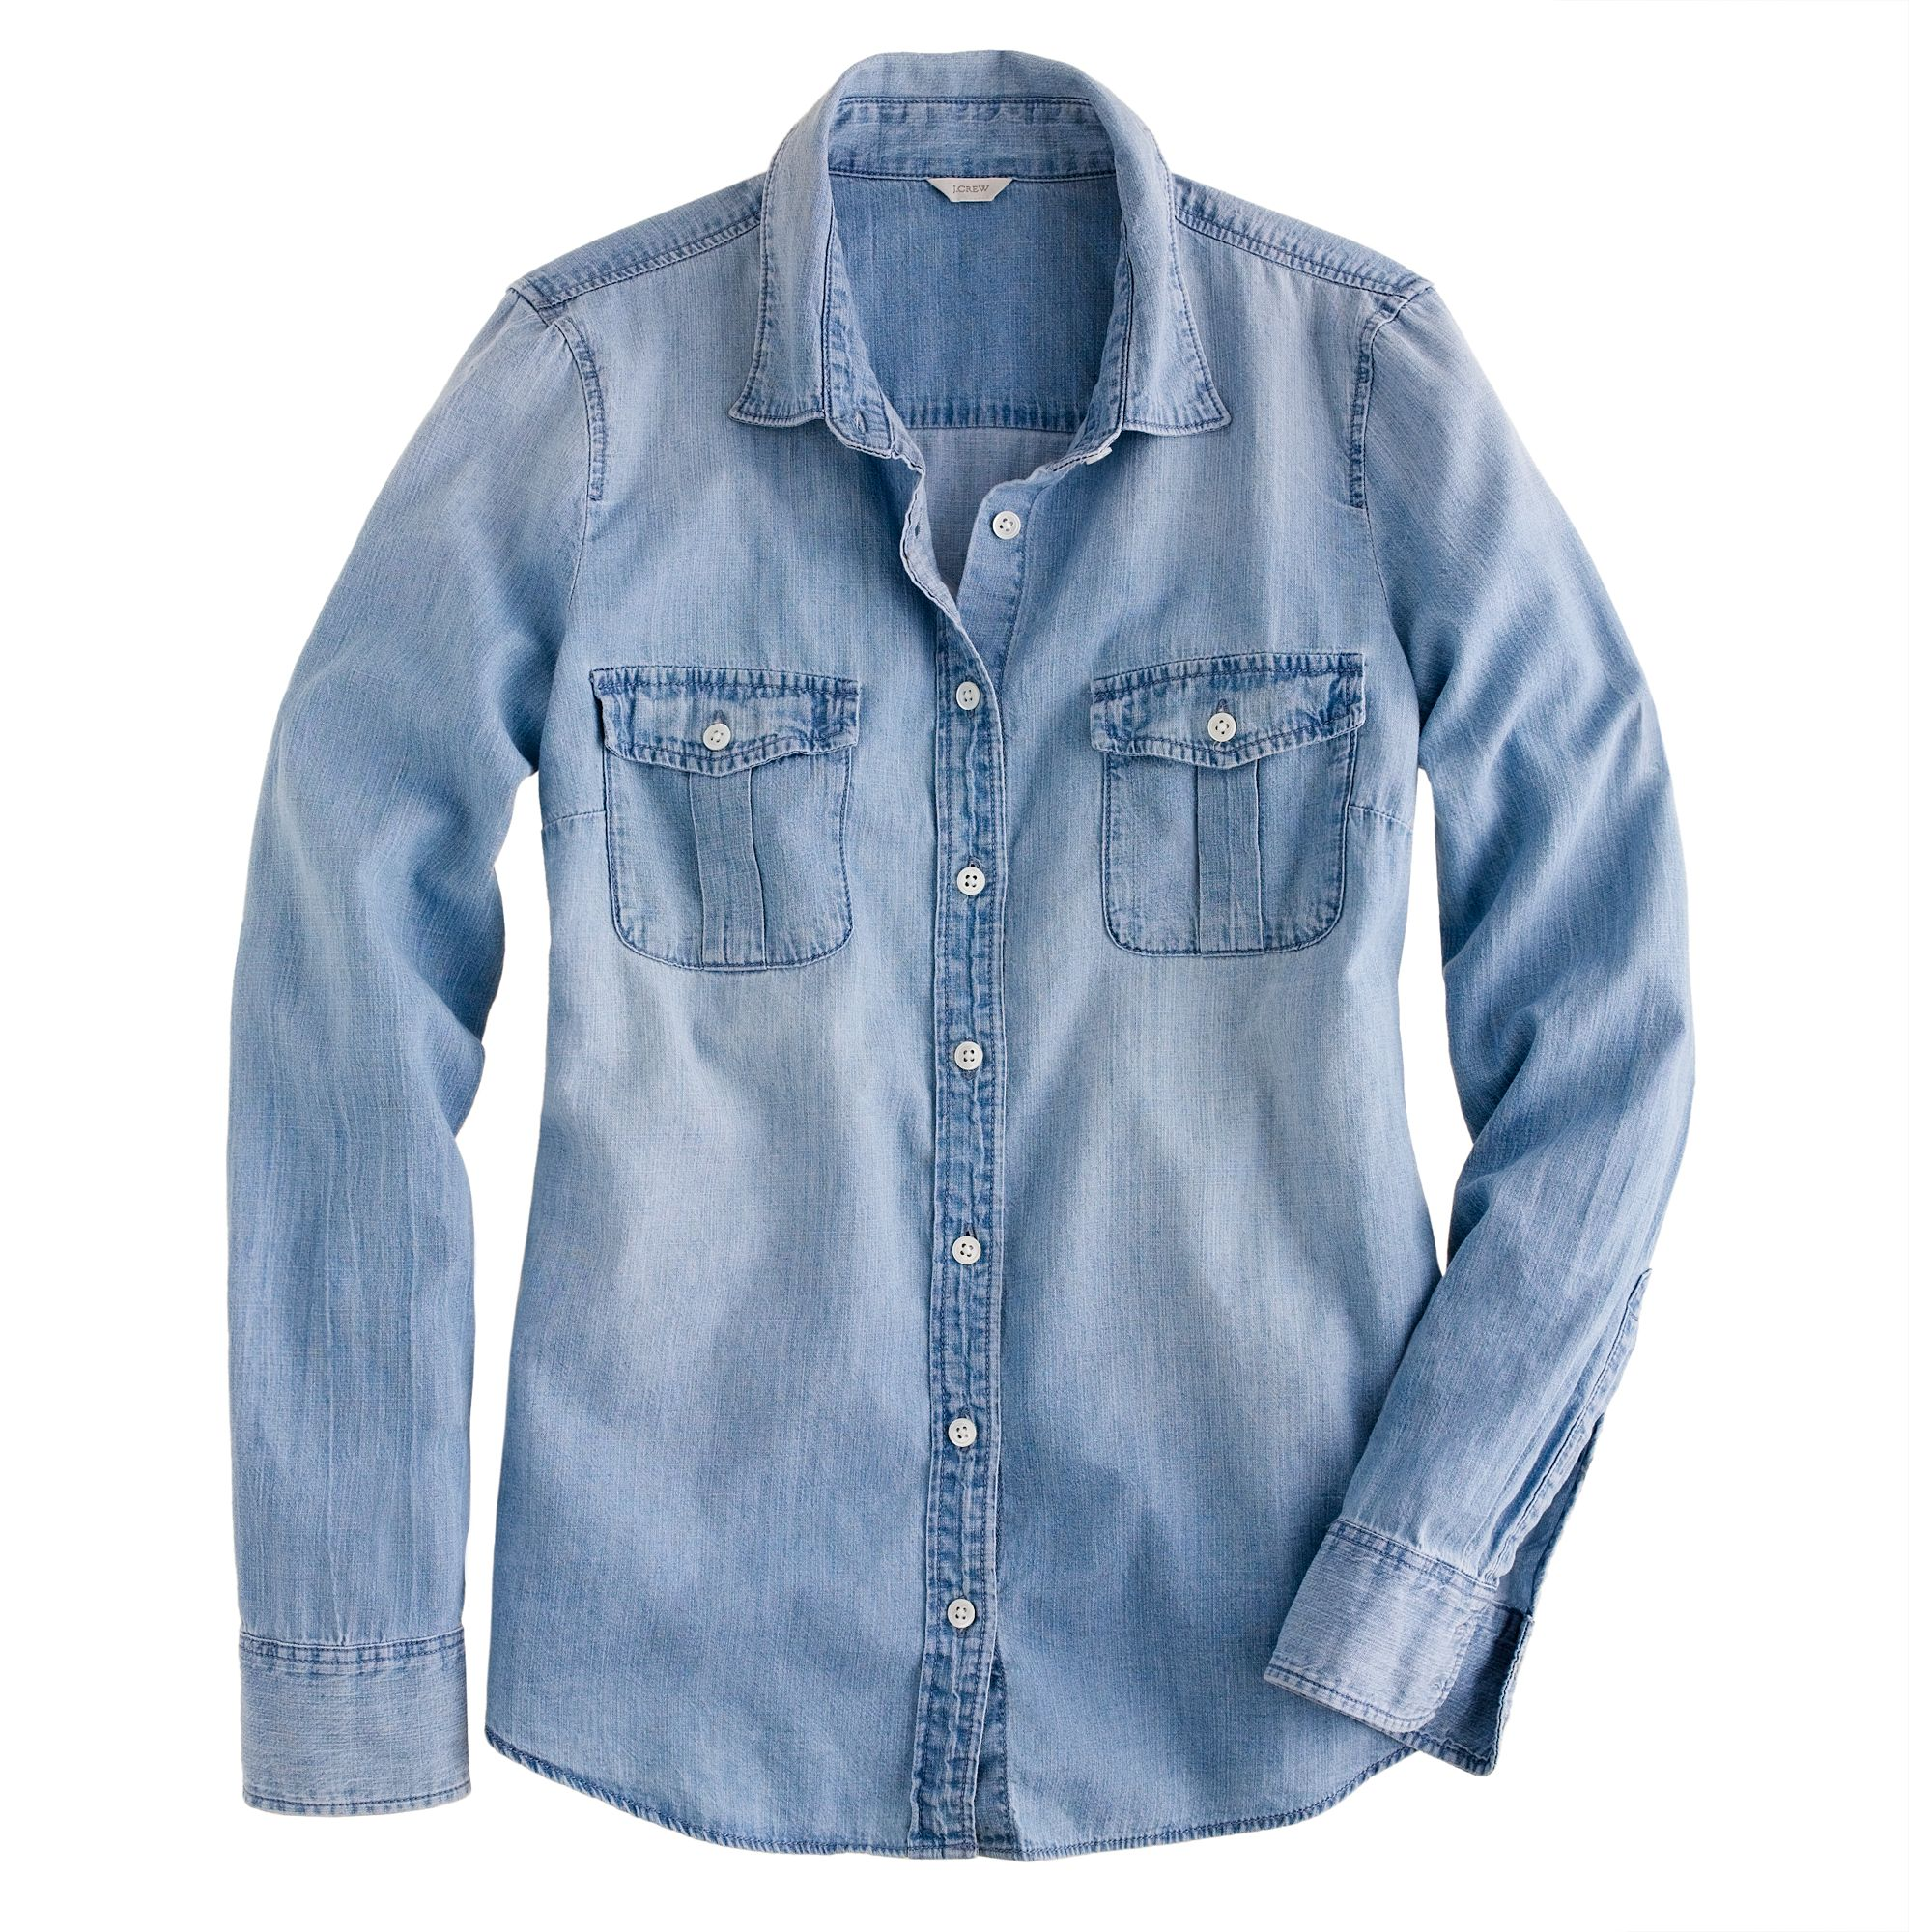 Chambray Dress Shirt Fabric Obviously, the denim that we are all most familiar with is the kind used to make jeans or 90's style denim jackets. This denim is generally very heavy, and in most cases would not make for a comfortable shirt.